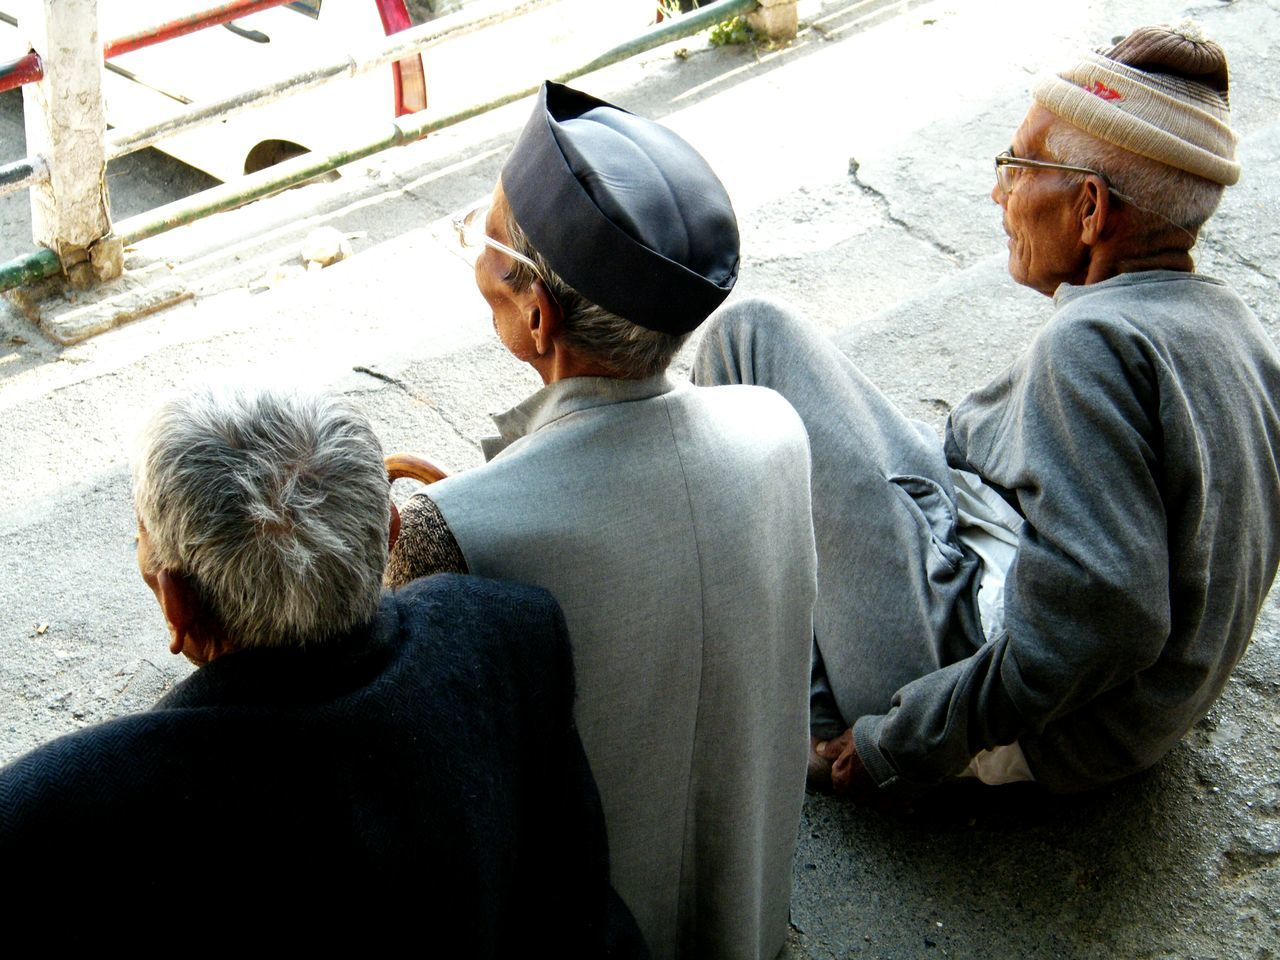 Remebering their old days. 3 best friends forever Rear View Casual Clothing Lifestyles Men Leisure Activity Sitting Street Person Outdoors Mature Adult Looking Bestfriends Three Old Traditional Clothing Remembering Old Times EyeEm Best Shots Chitchat